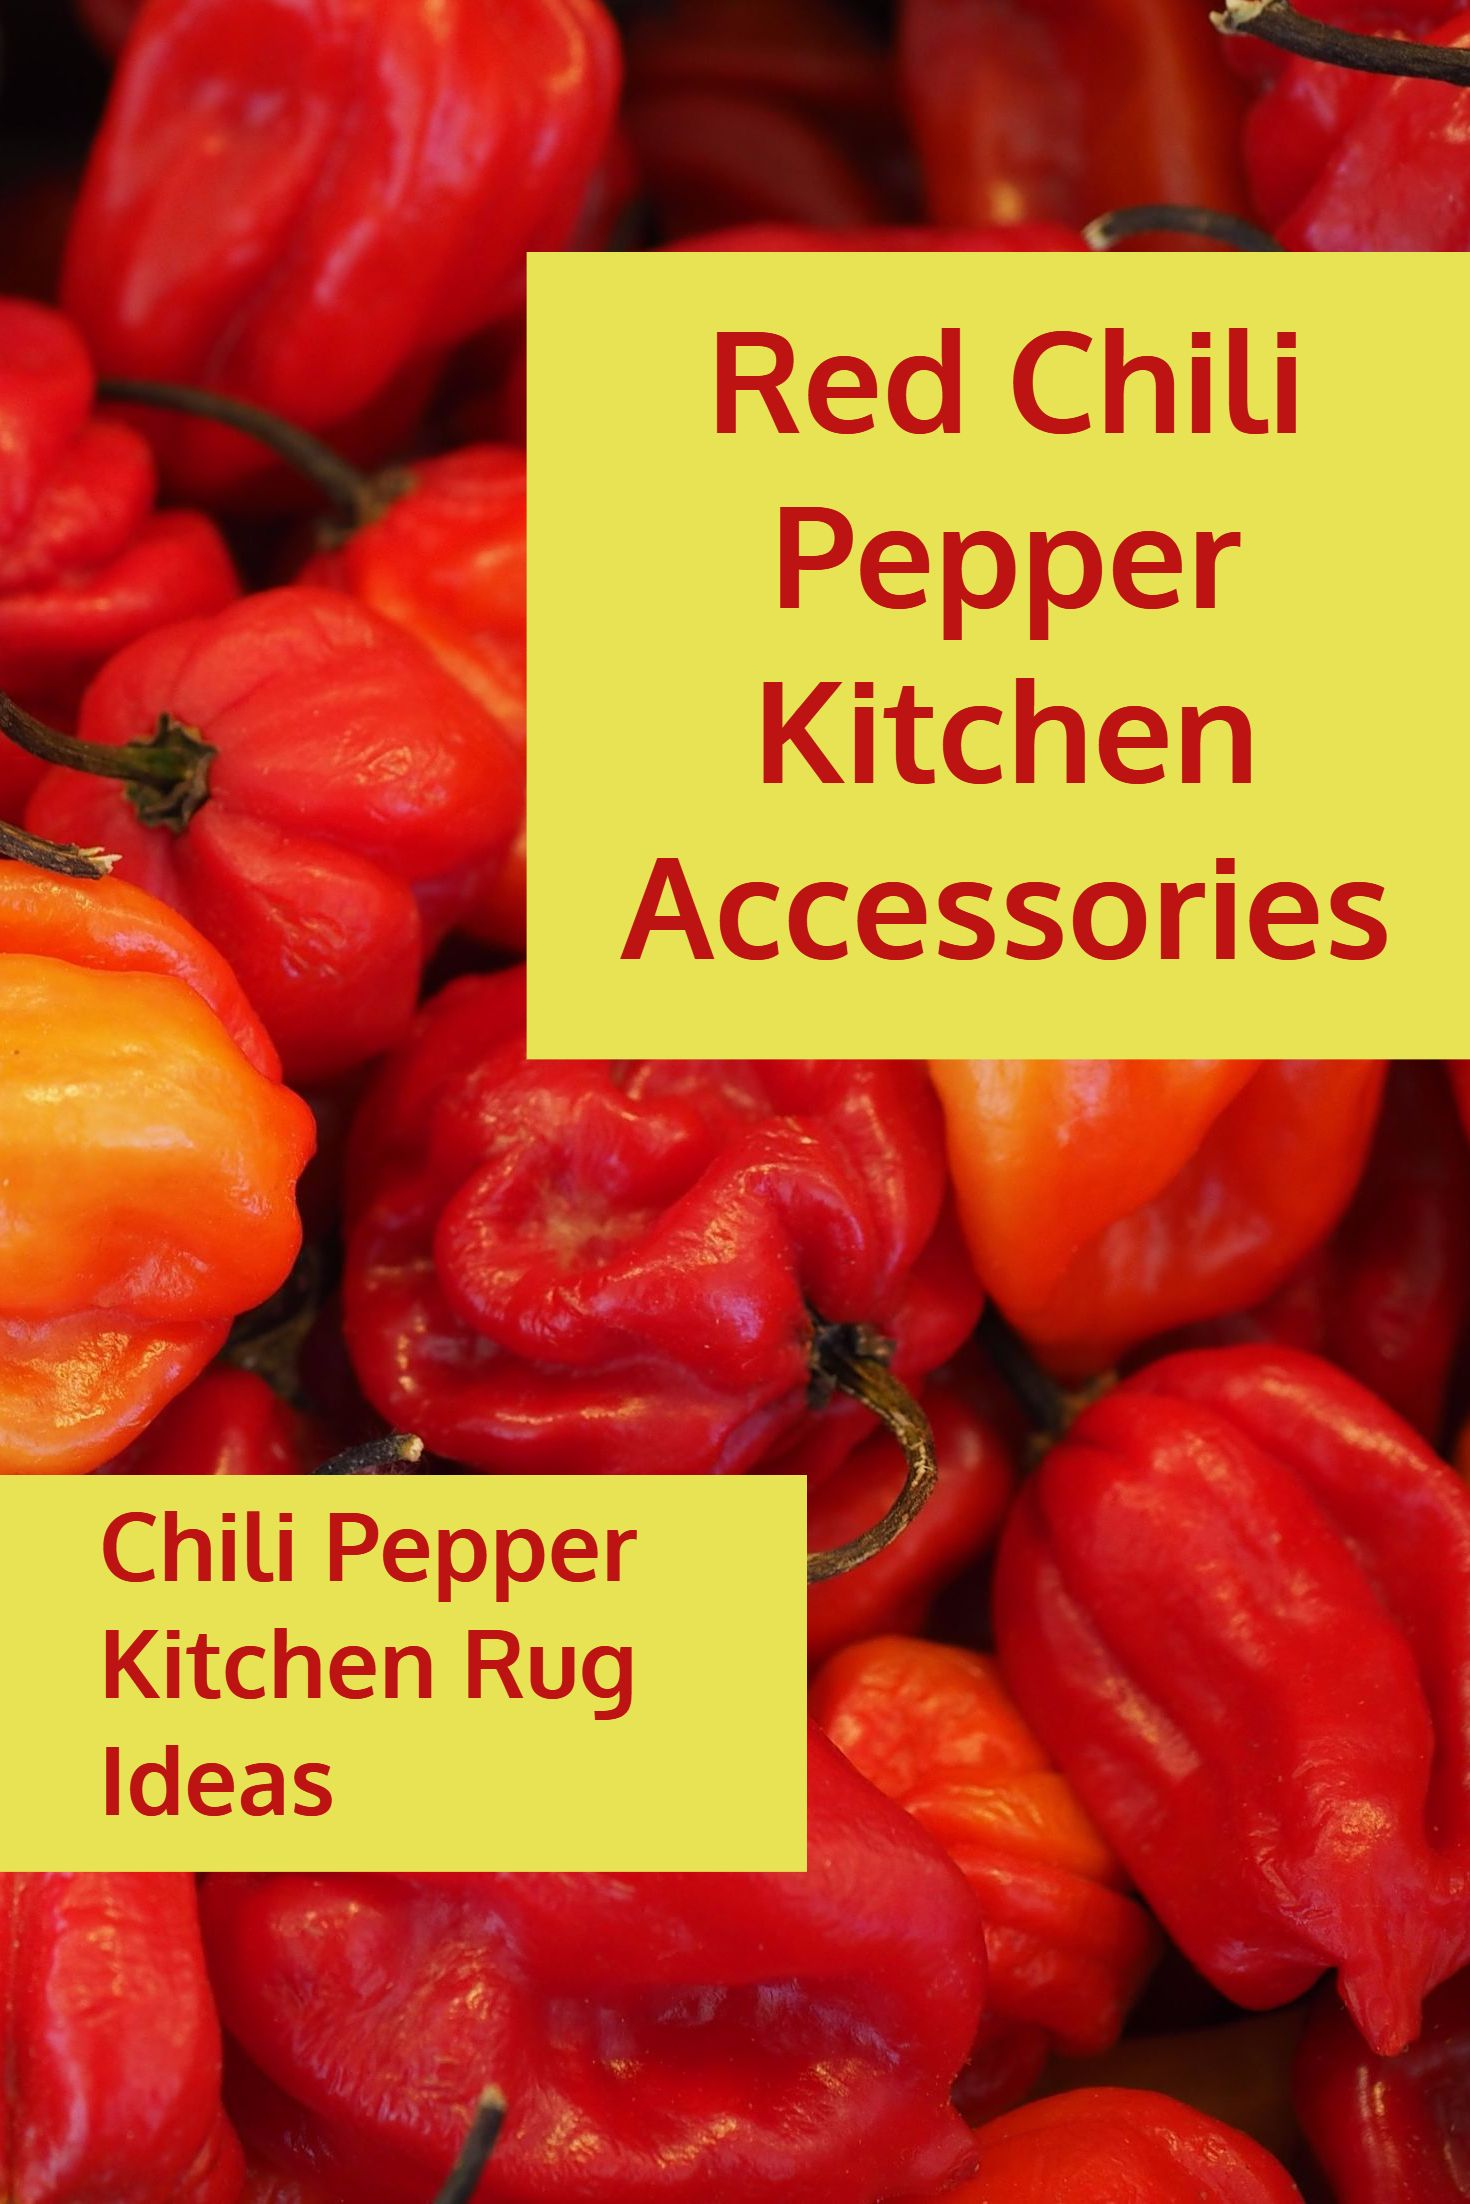 Red Chili Pepper Kitchen Accessories / Chili Pepper Kitchen Rug ...